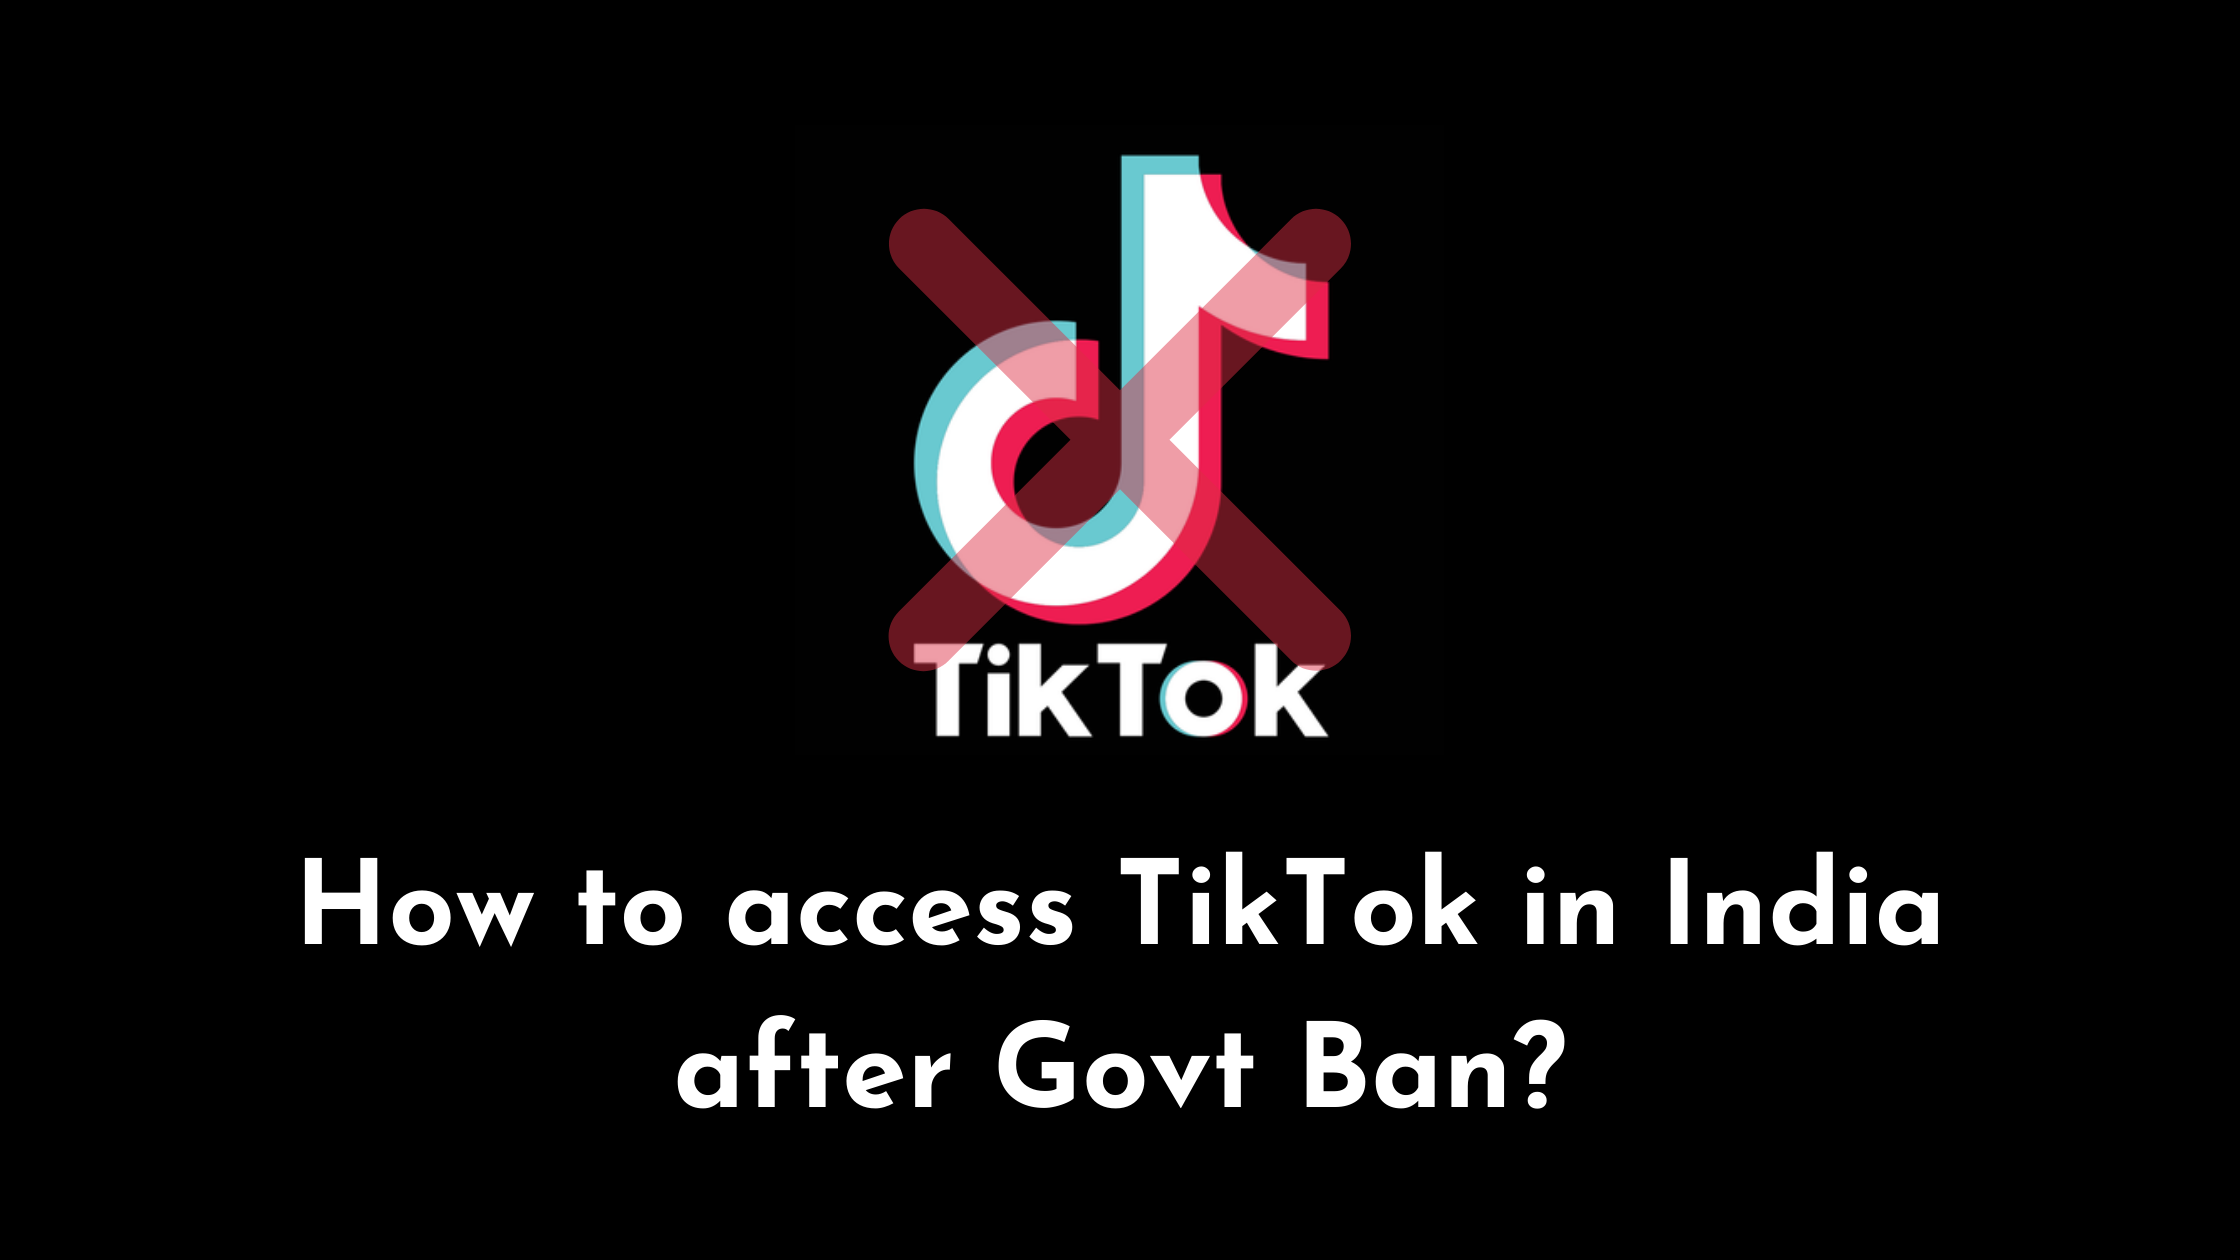 [SECRET TRICK] How to access TikTok in India after Govt Ban?